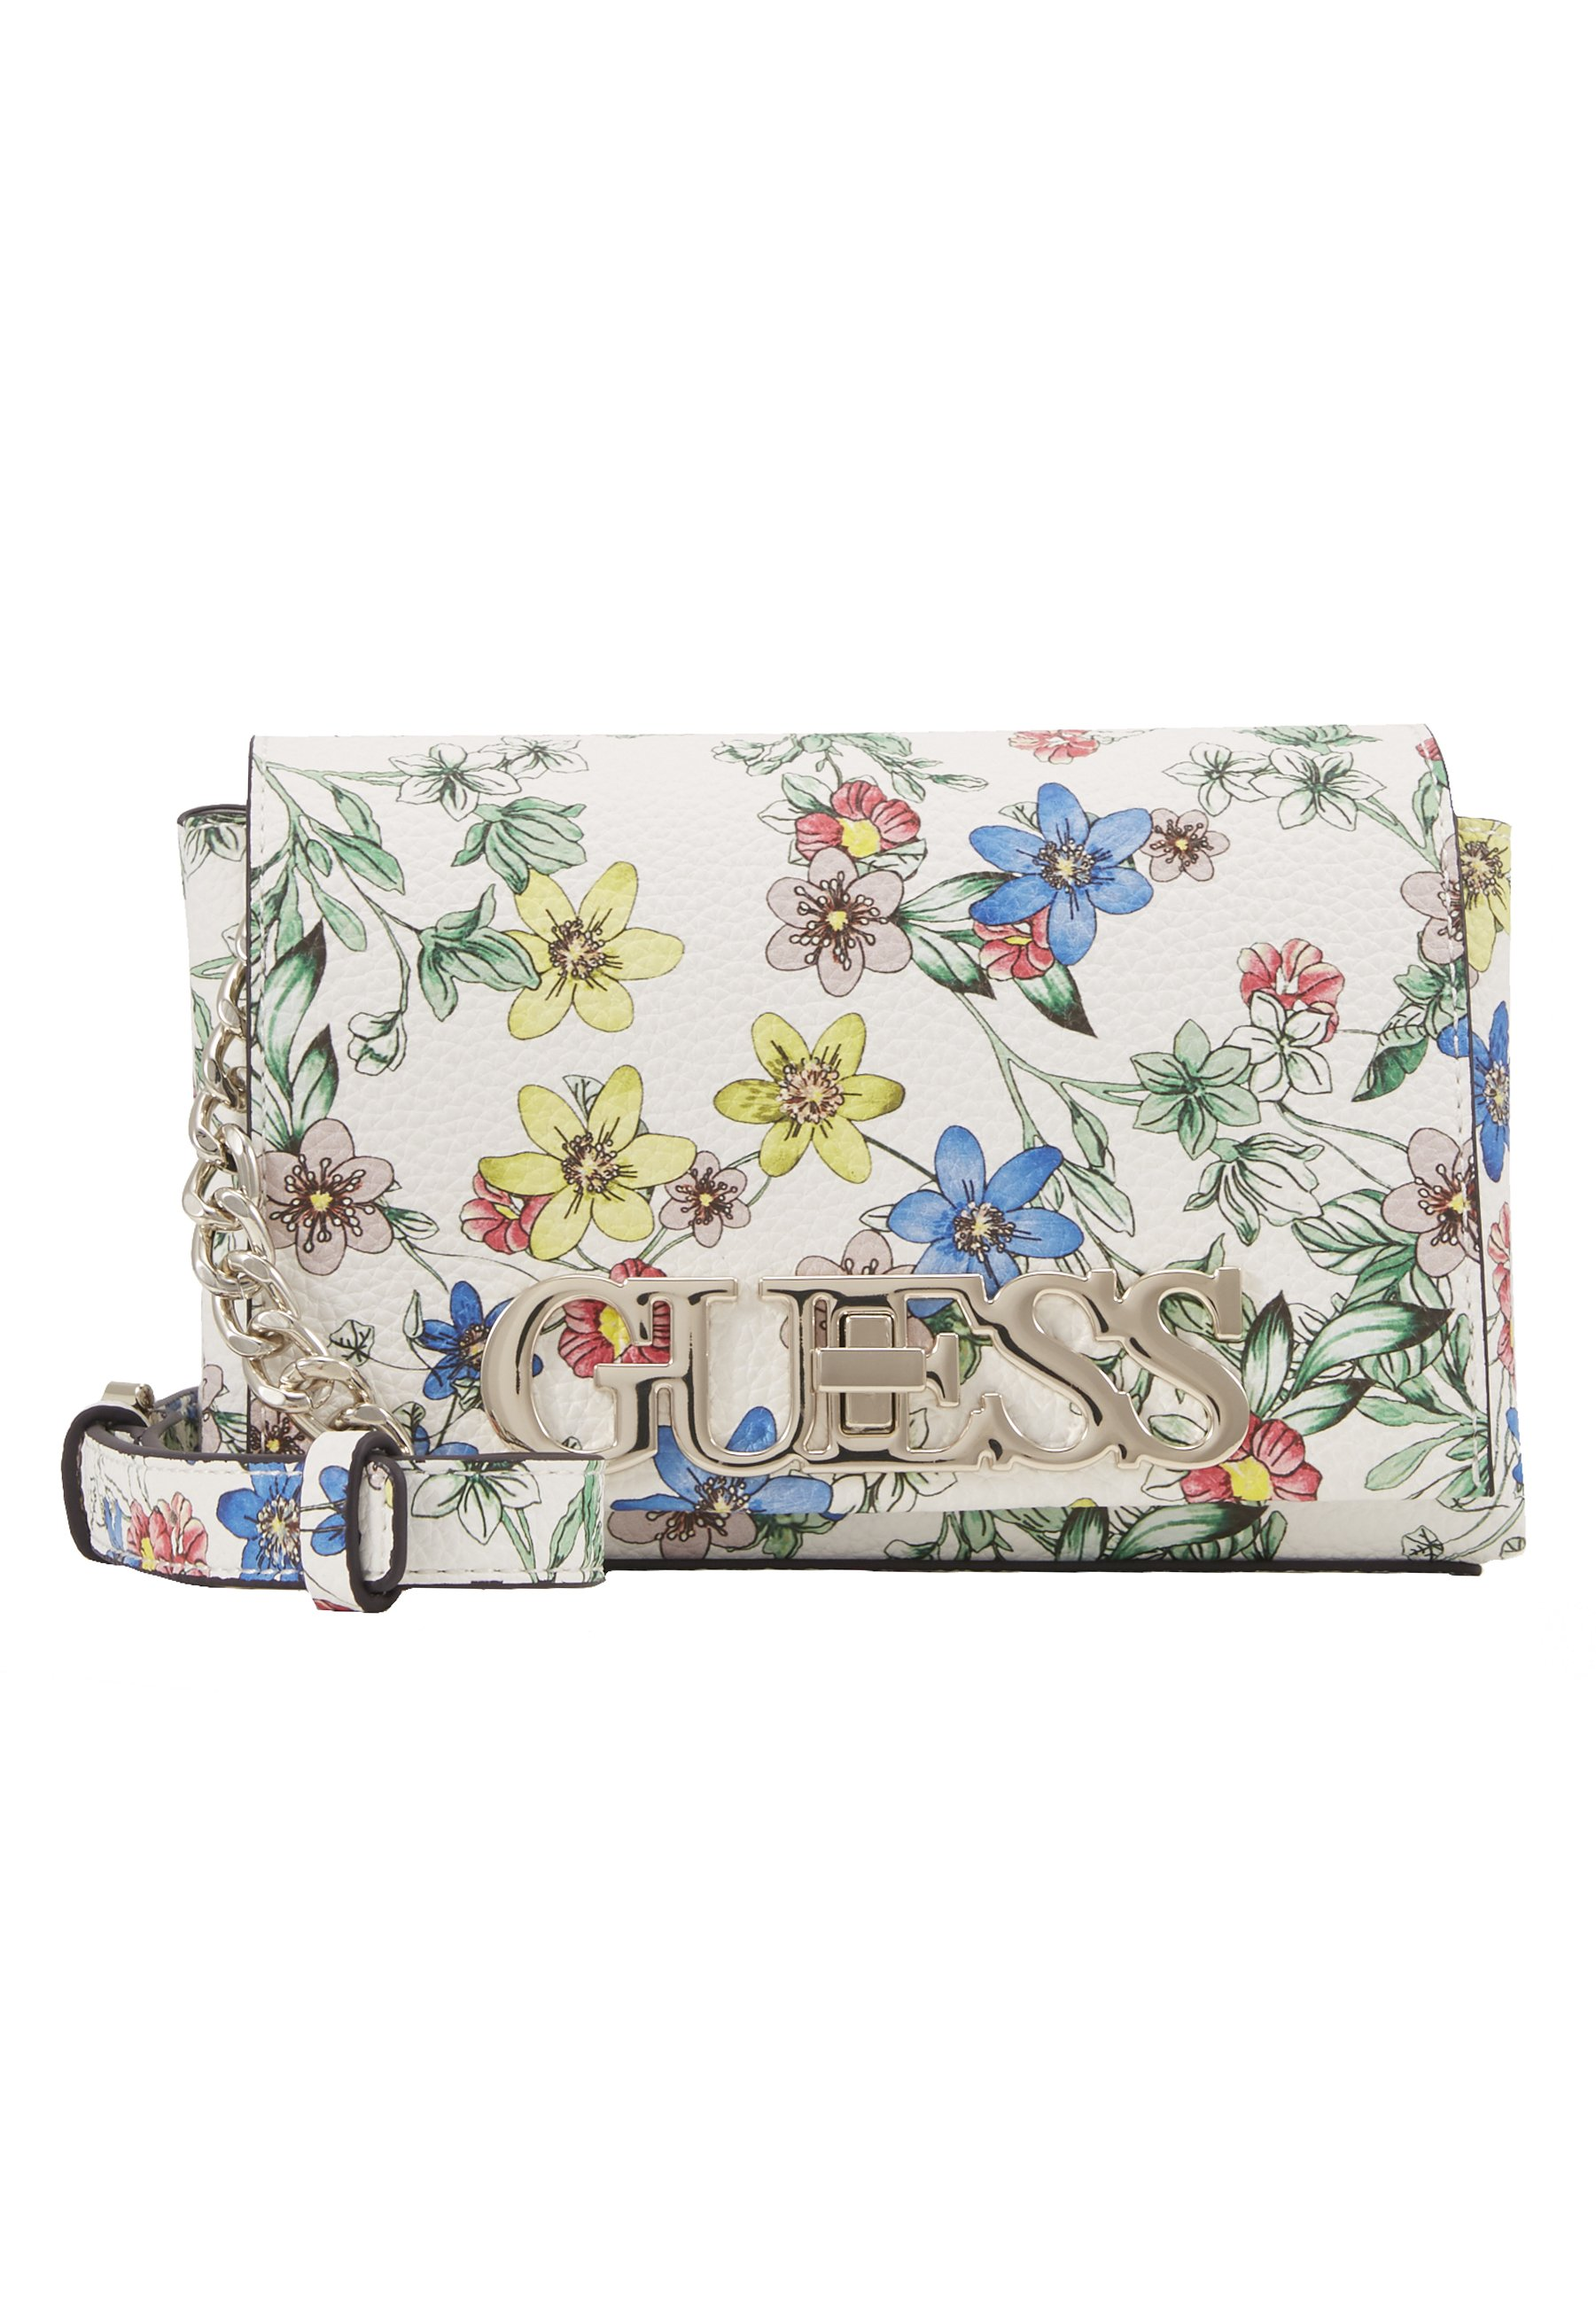 Guess Uptown Chic Mini Xbody Flap - Umhängetasche Floral/mehrfarbig